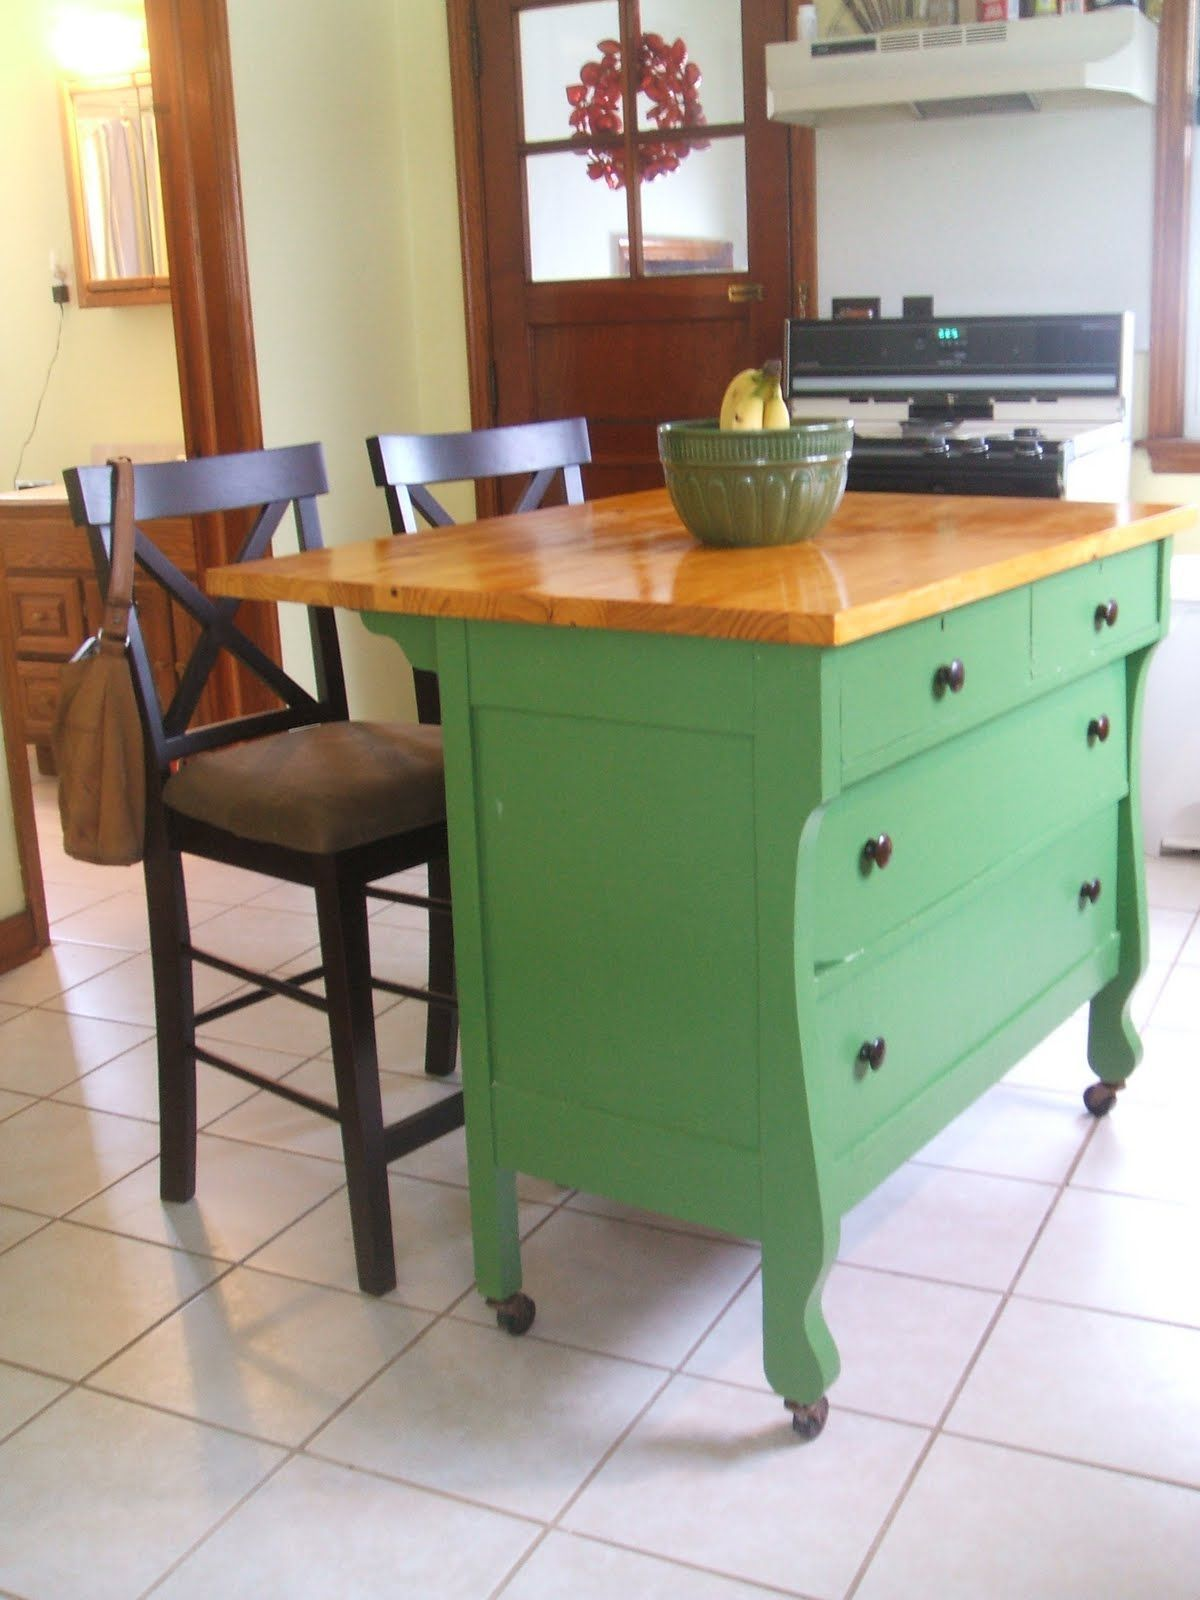 Diy Portable Kitchen Islands New In Ideas Enchanting How To Build